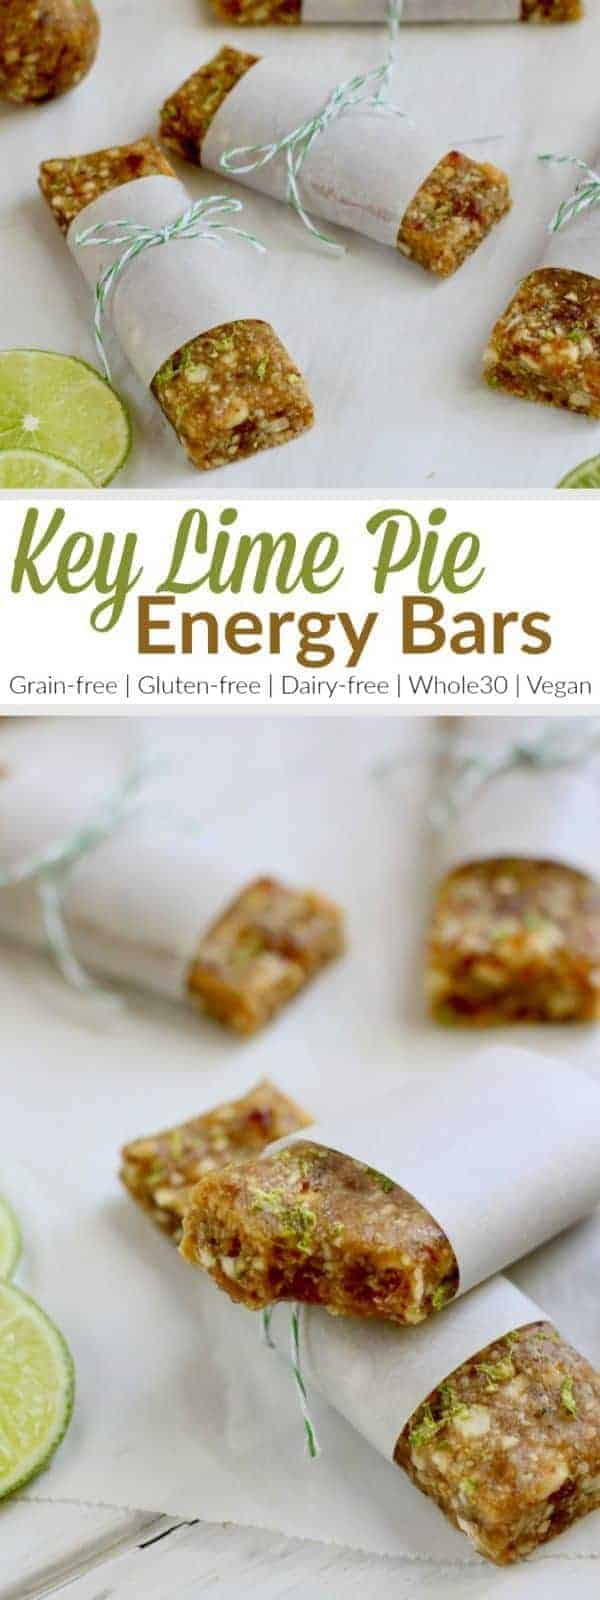 Pinterest image for Key Lime Pie Energy Bars